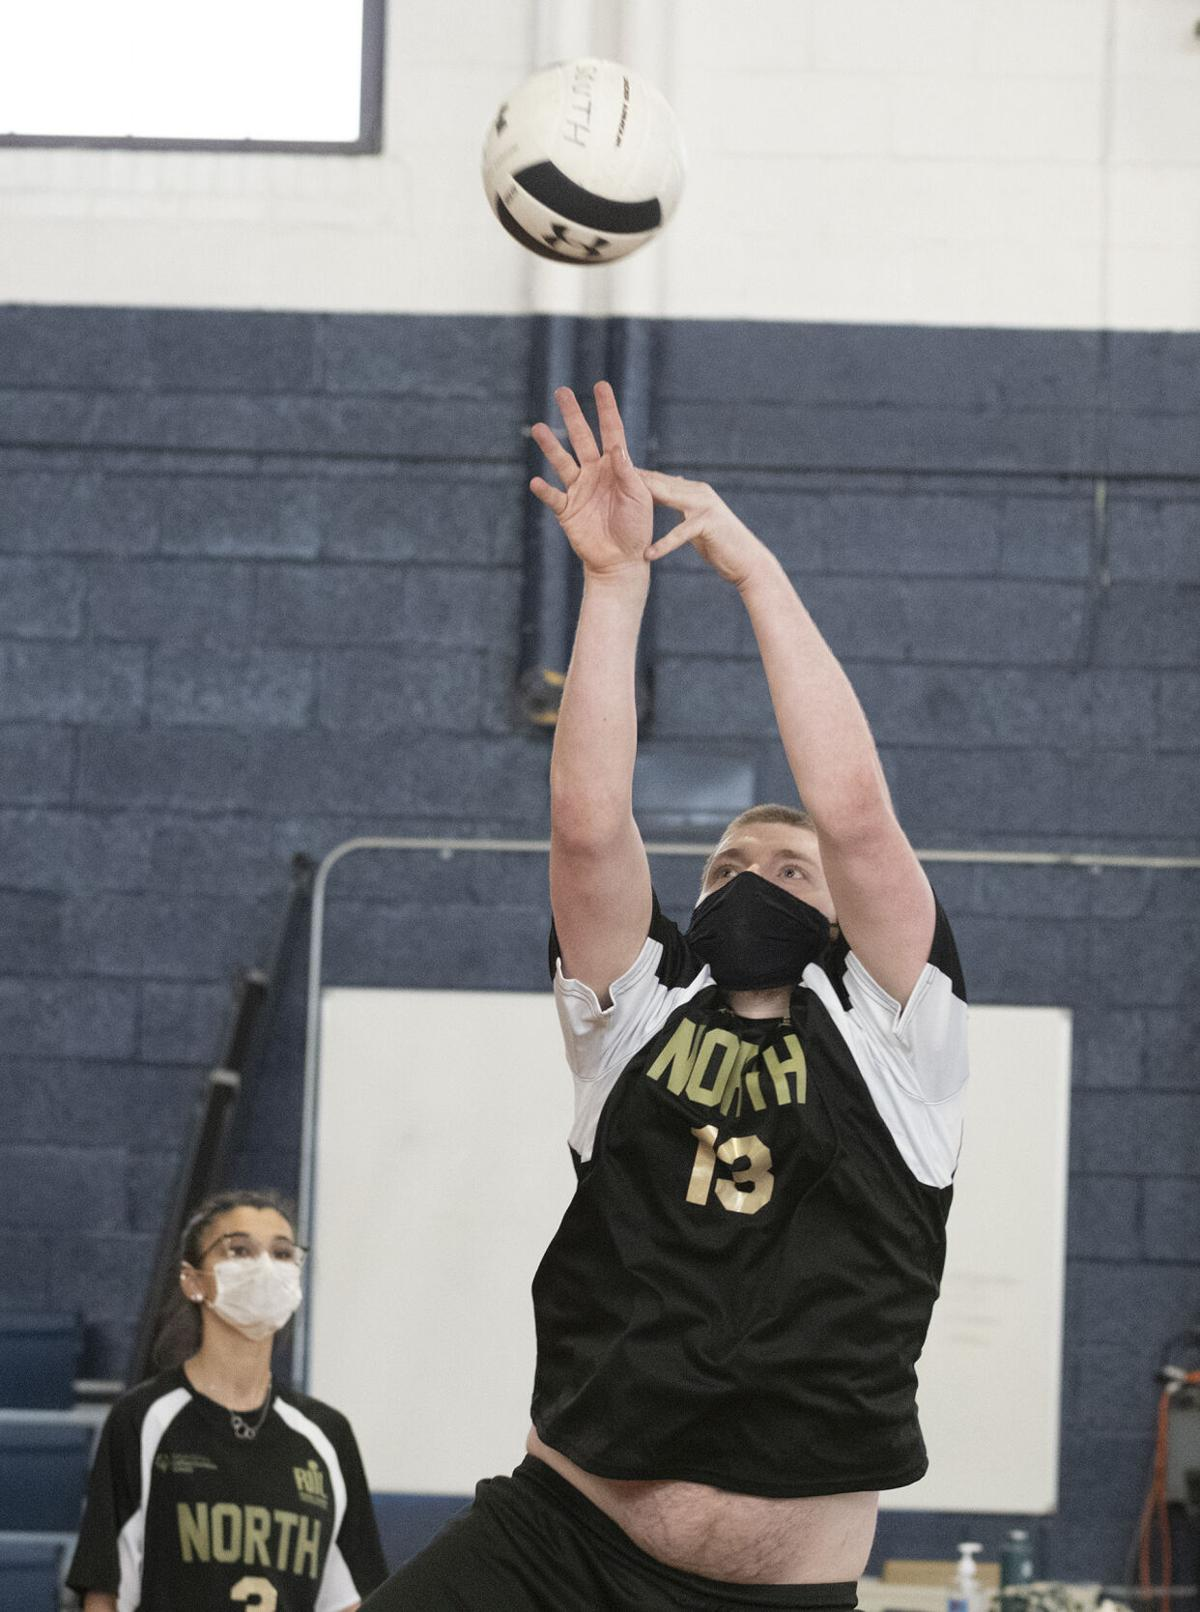 210408ind unified02.jpg